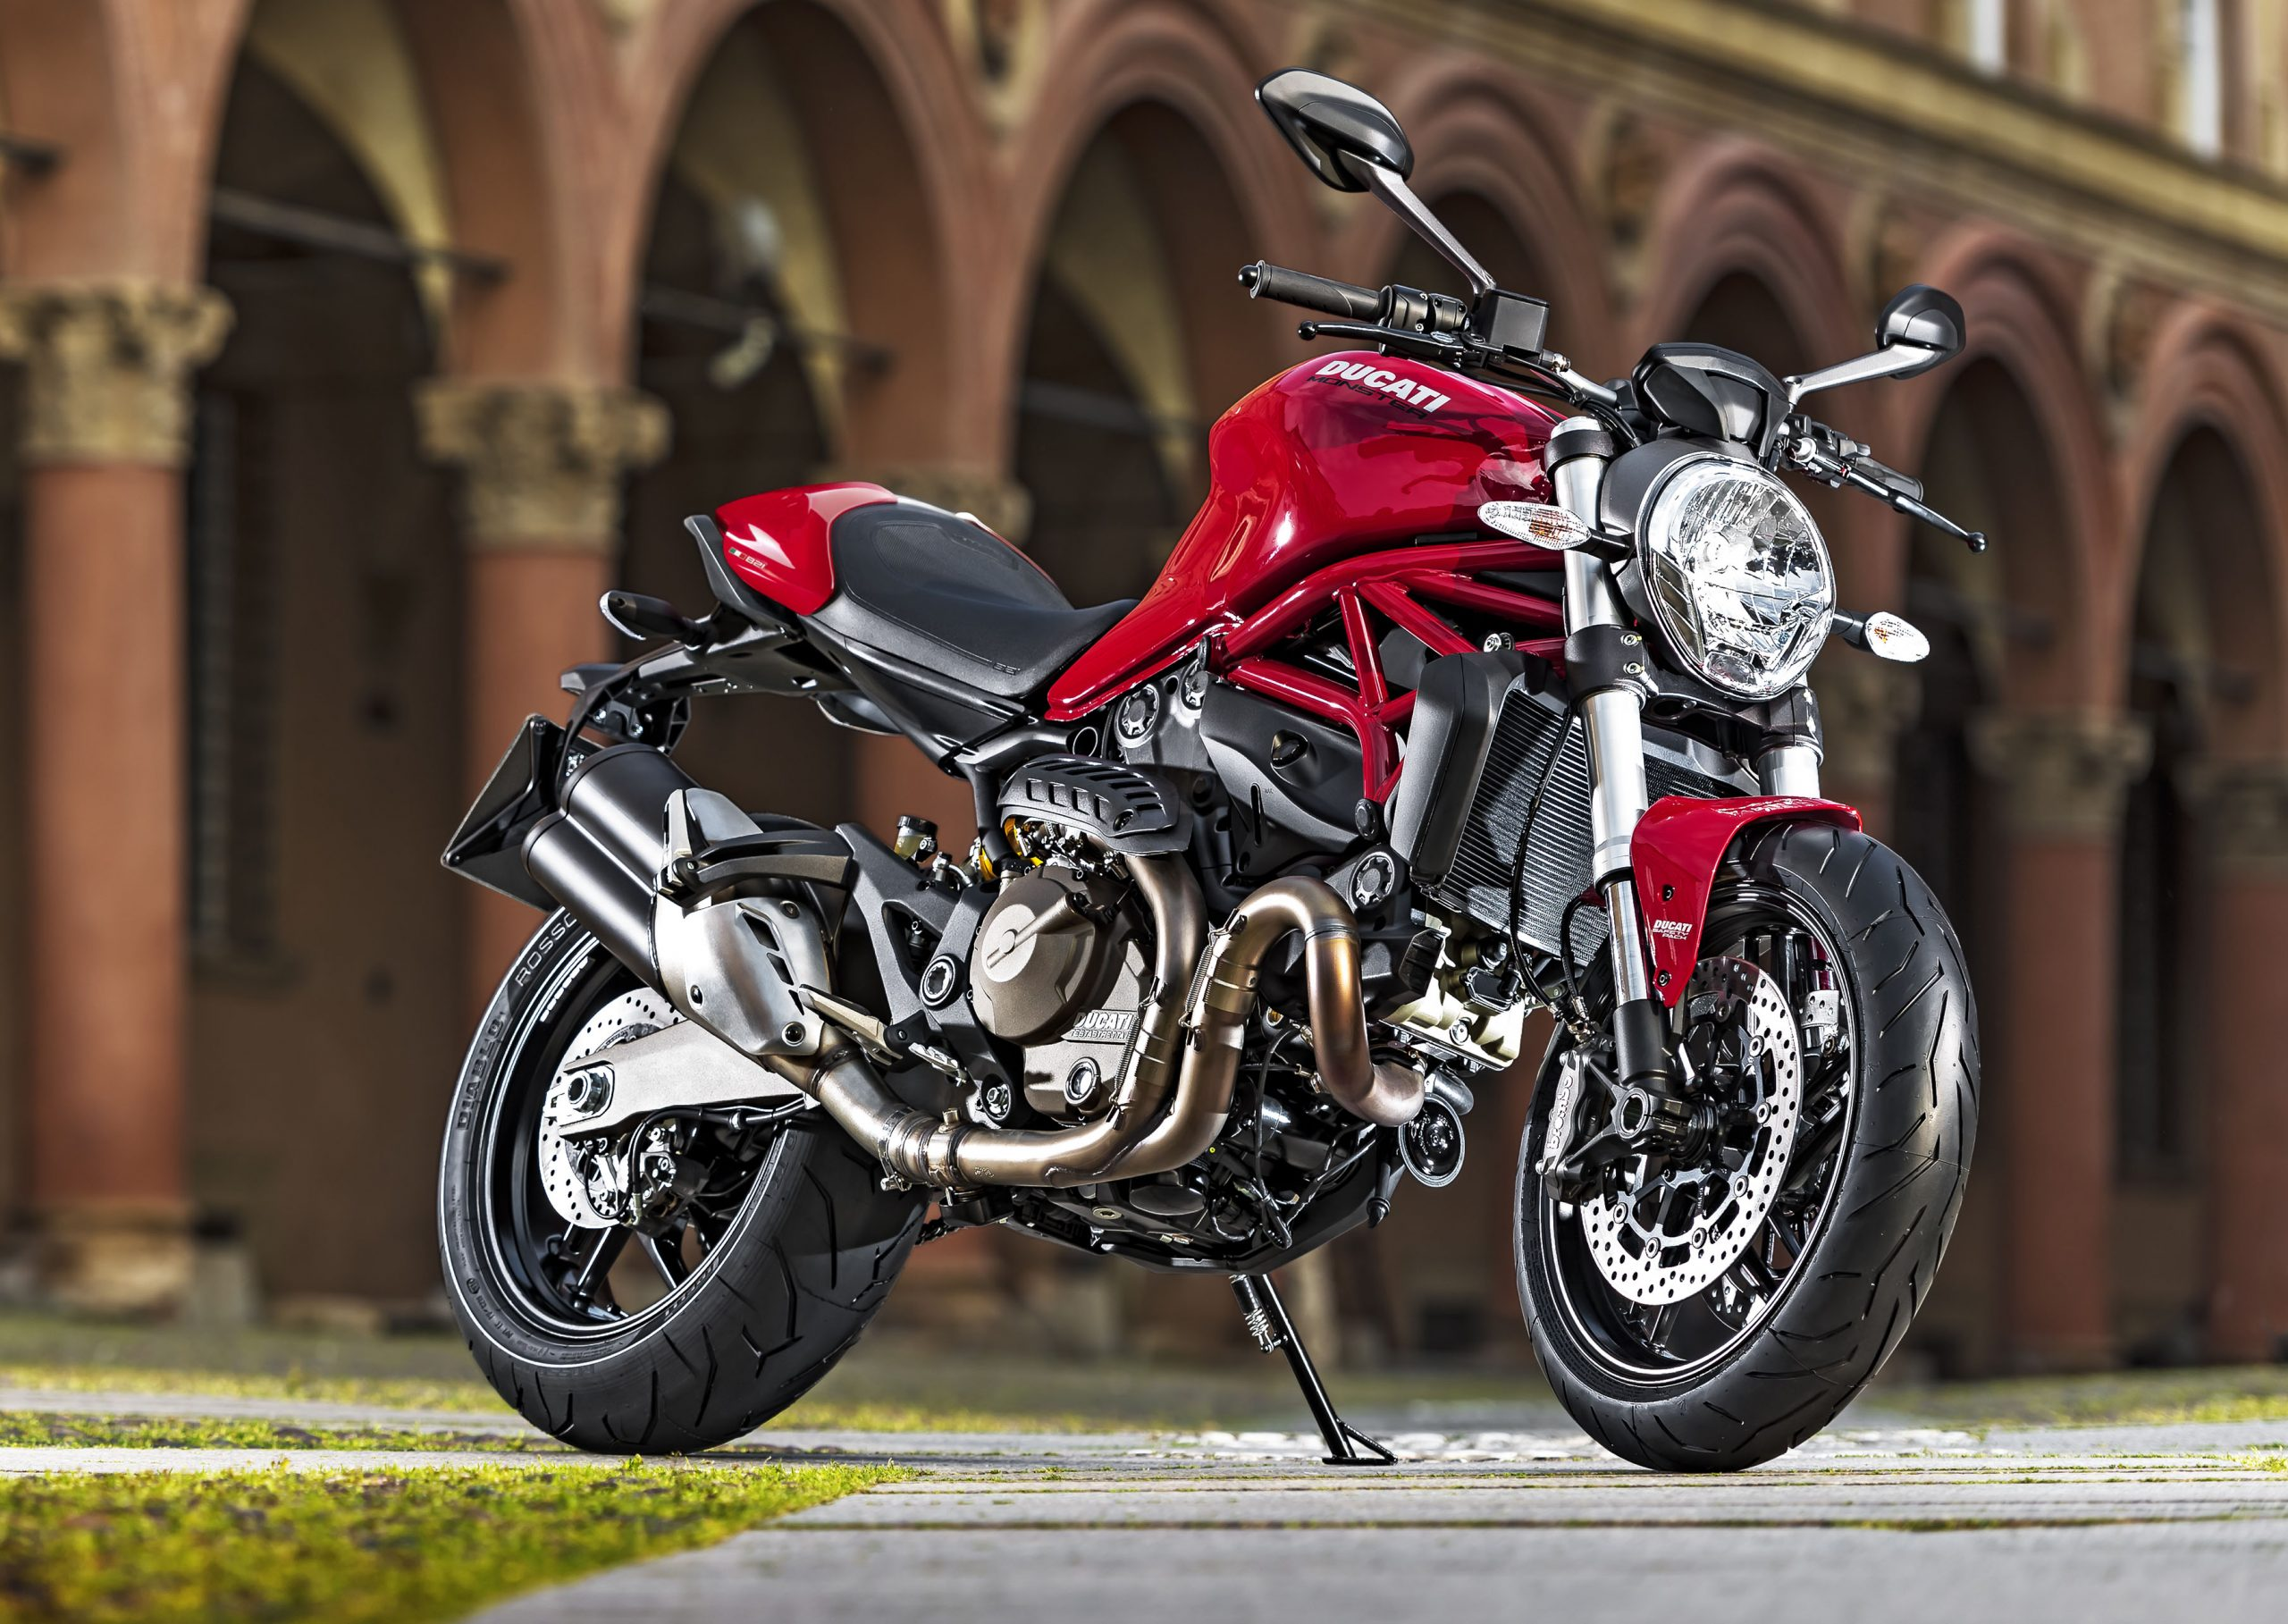 Ducati Announces New, Water-Cooled, 112-Horsepower Monster